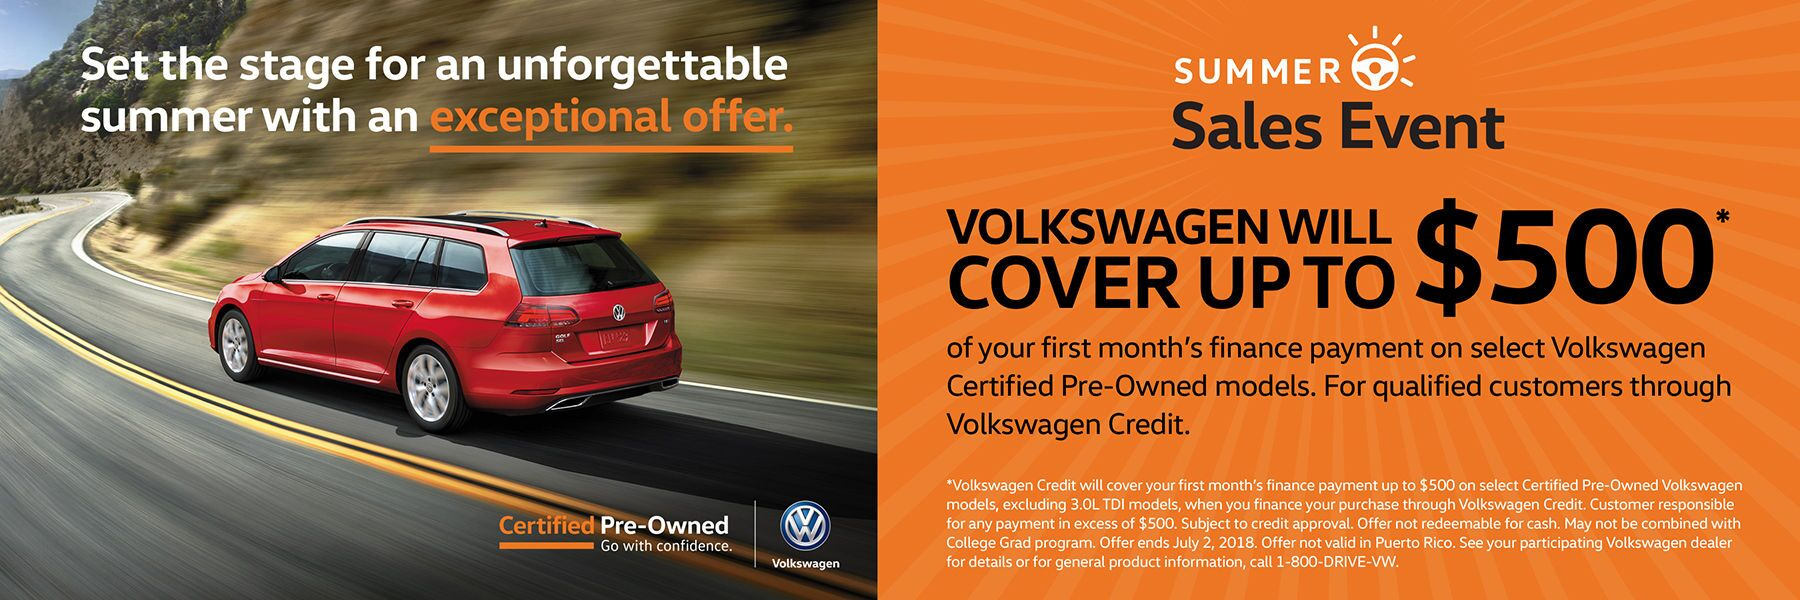 Used Volkswagen car specials El Paso, Texas